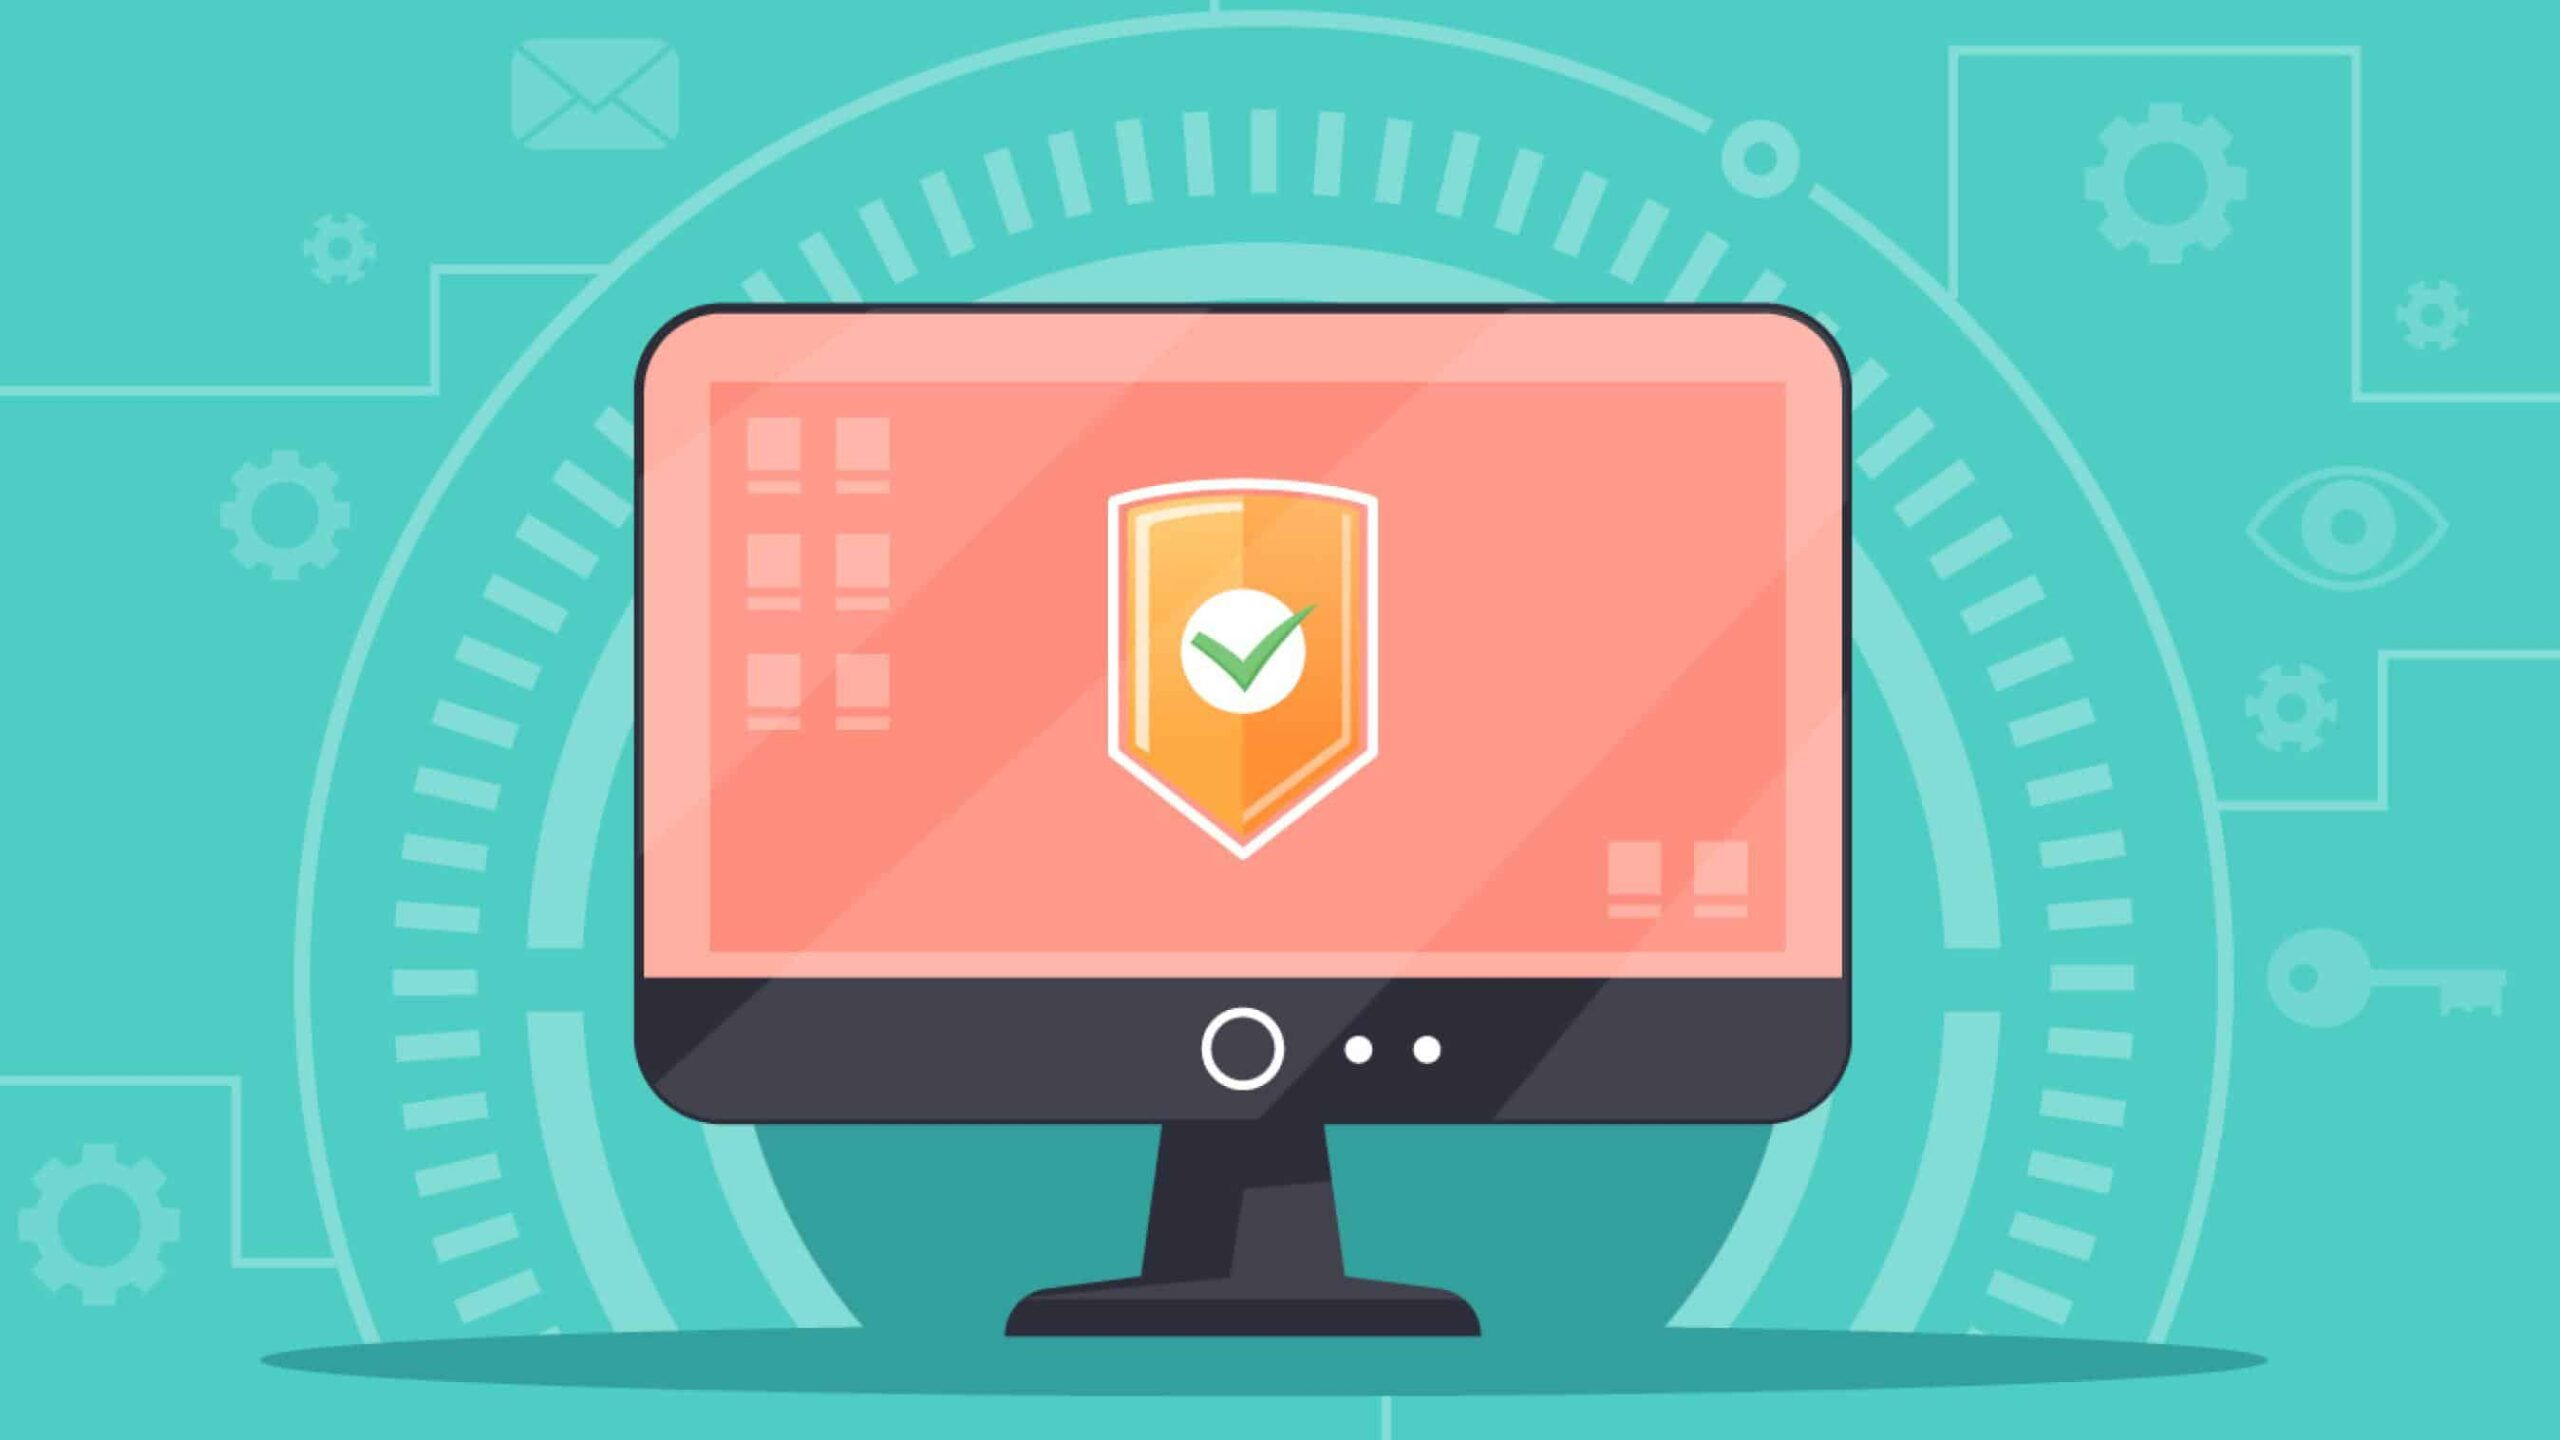 6 Reasons Why You Shouldn't Use a Free Antivirus